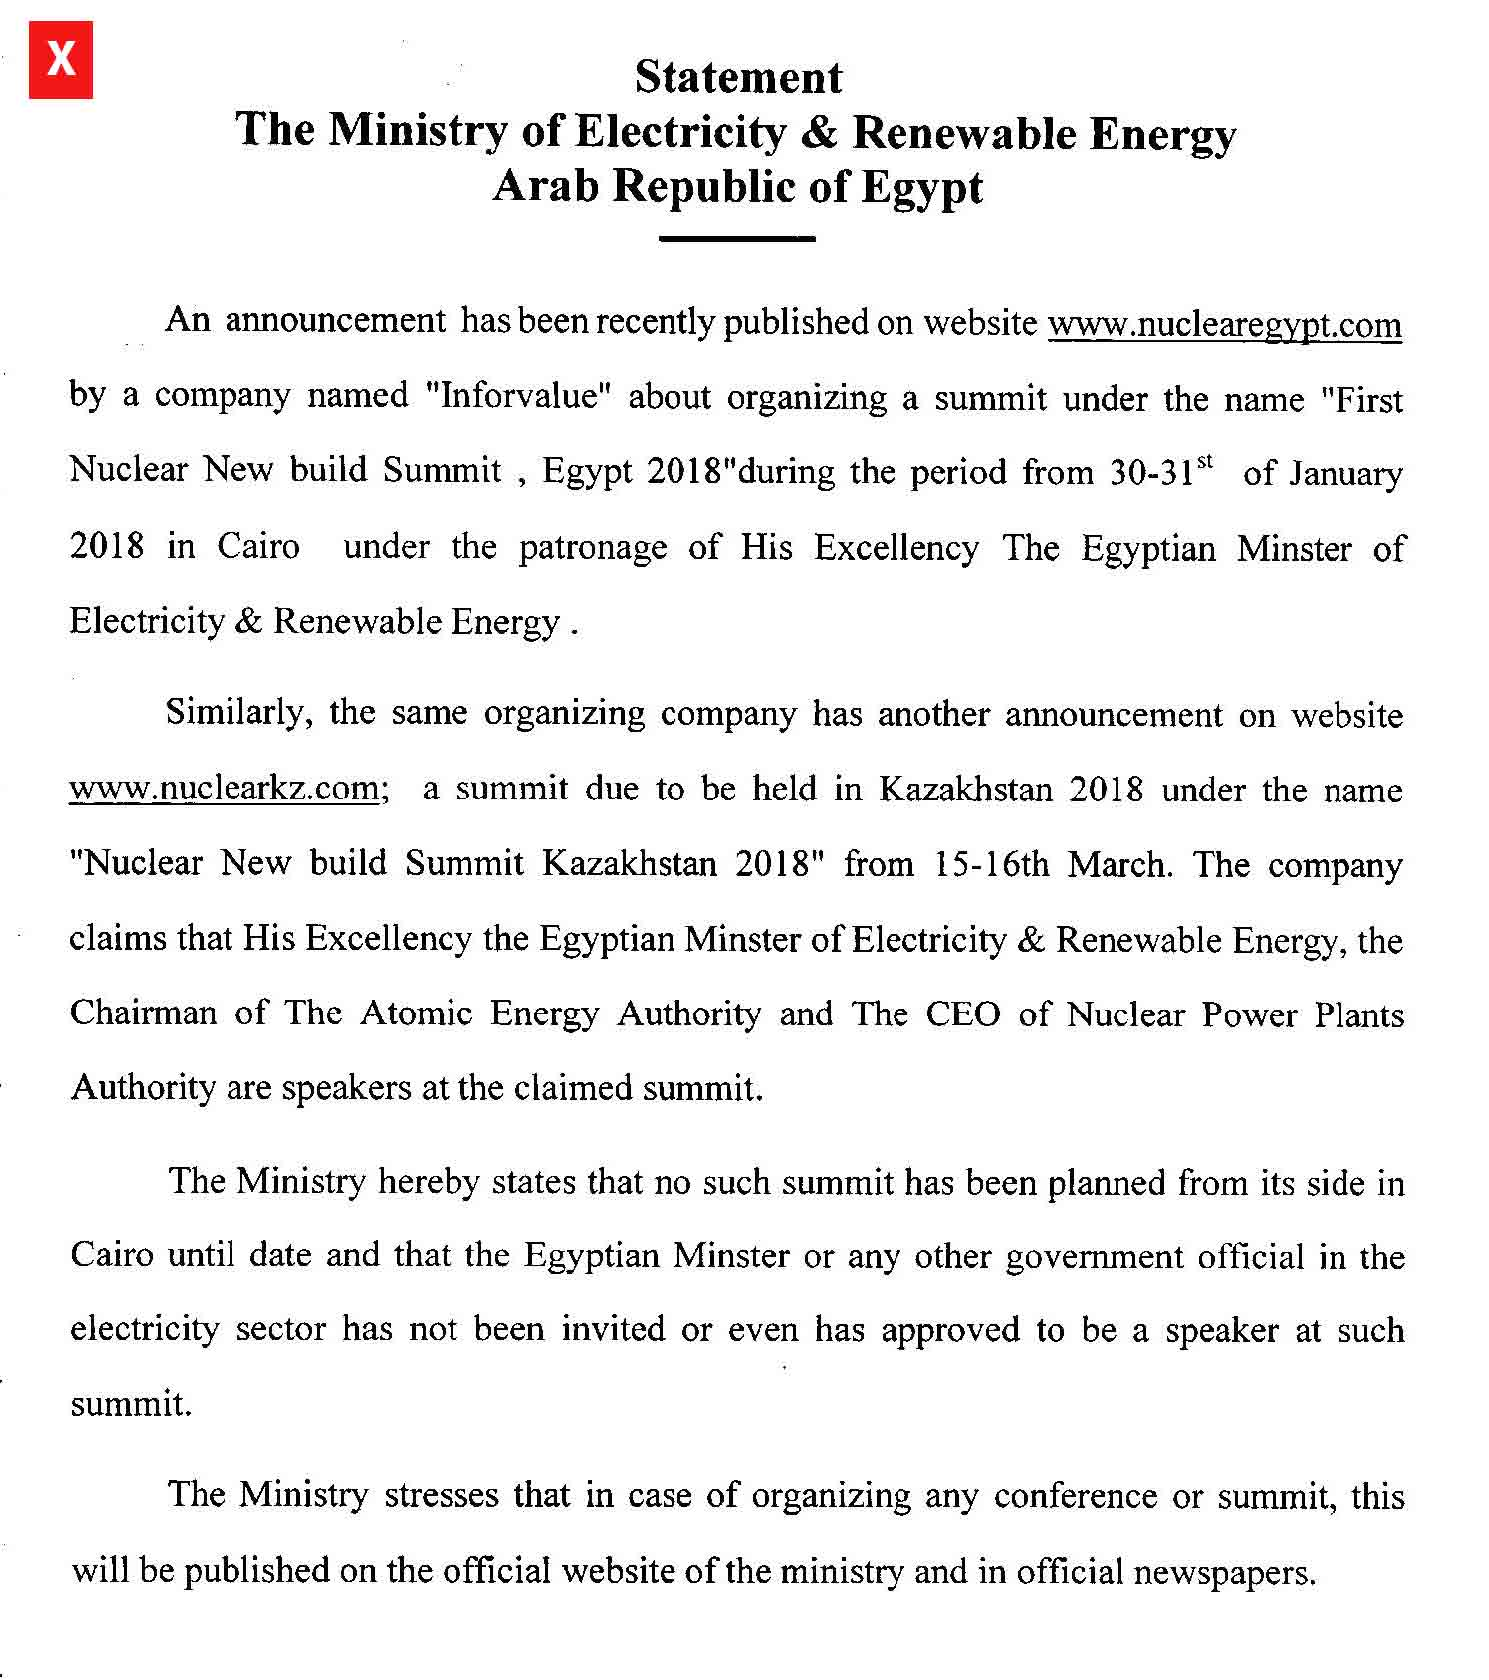 The Ministry of Electricity and Renewable Energy